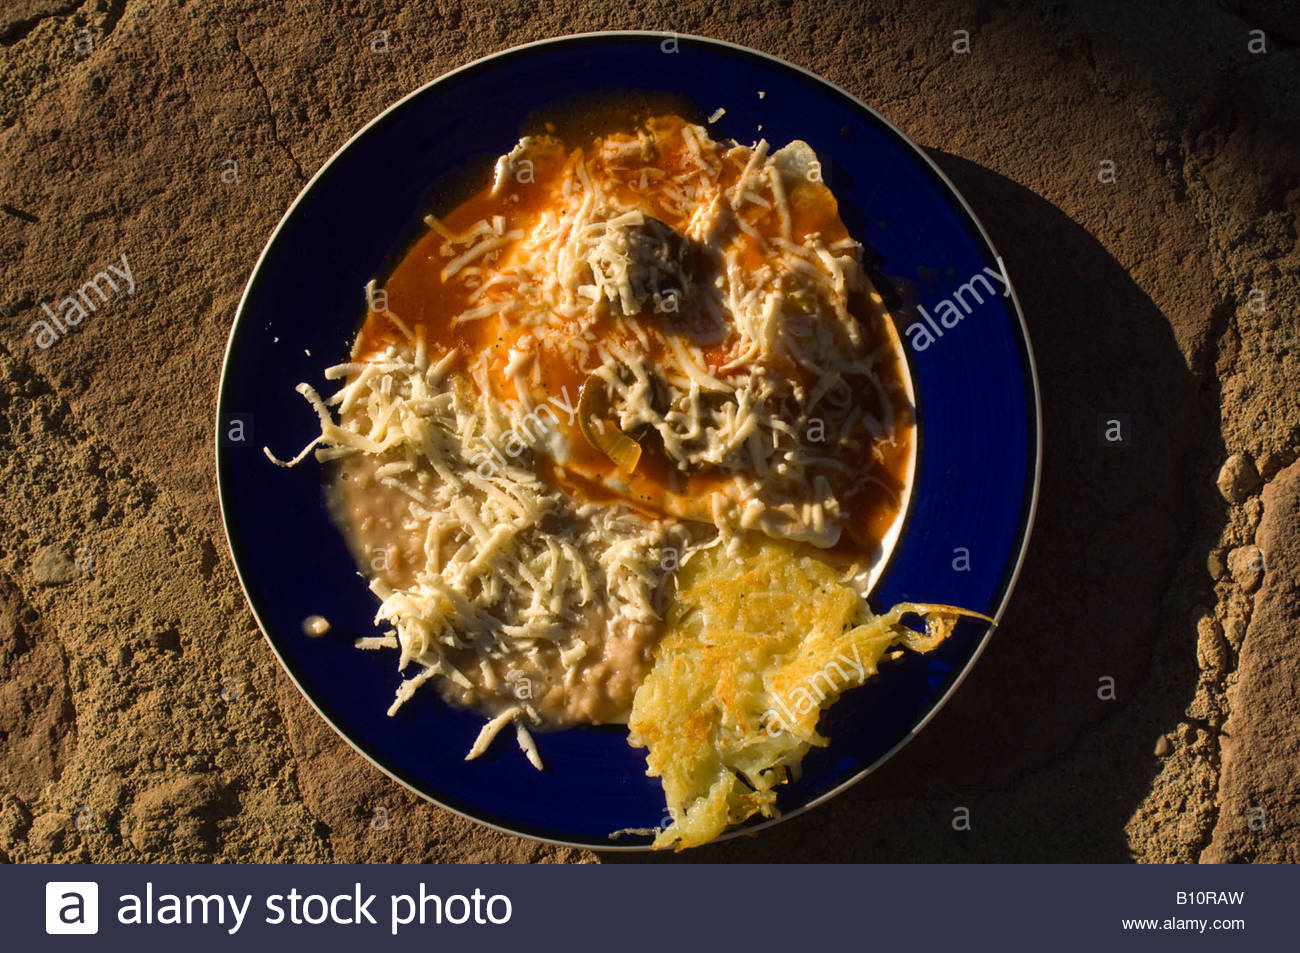 Huevos rancheros Porochi Inn Urique Canyon Copper Canyon Mexico - Stock Image